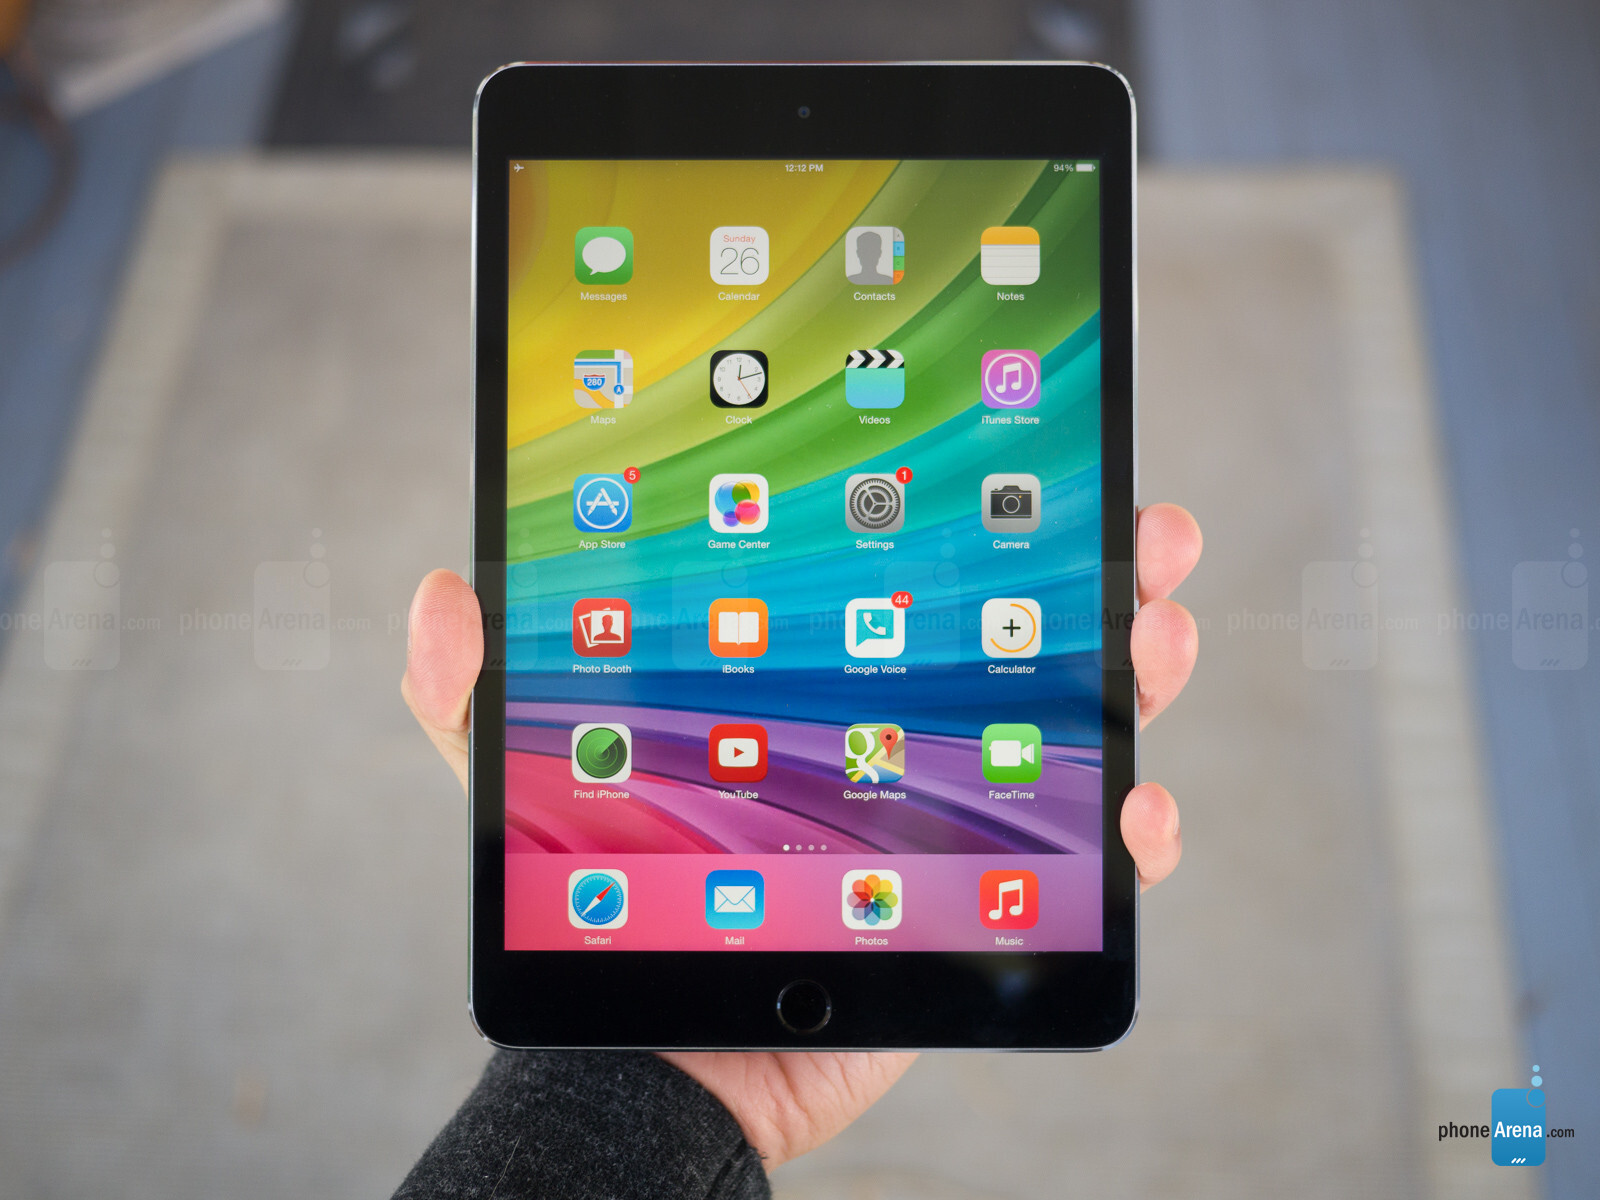 Pre order the apple ipad air 2 and apple ipad mini 3 for 0 down from